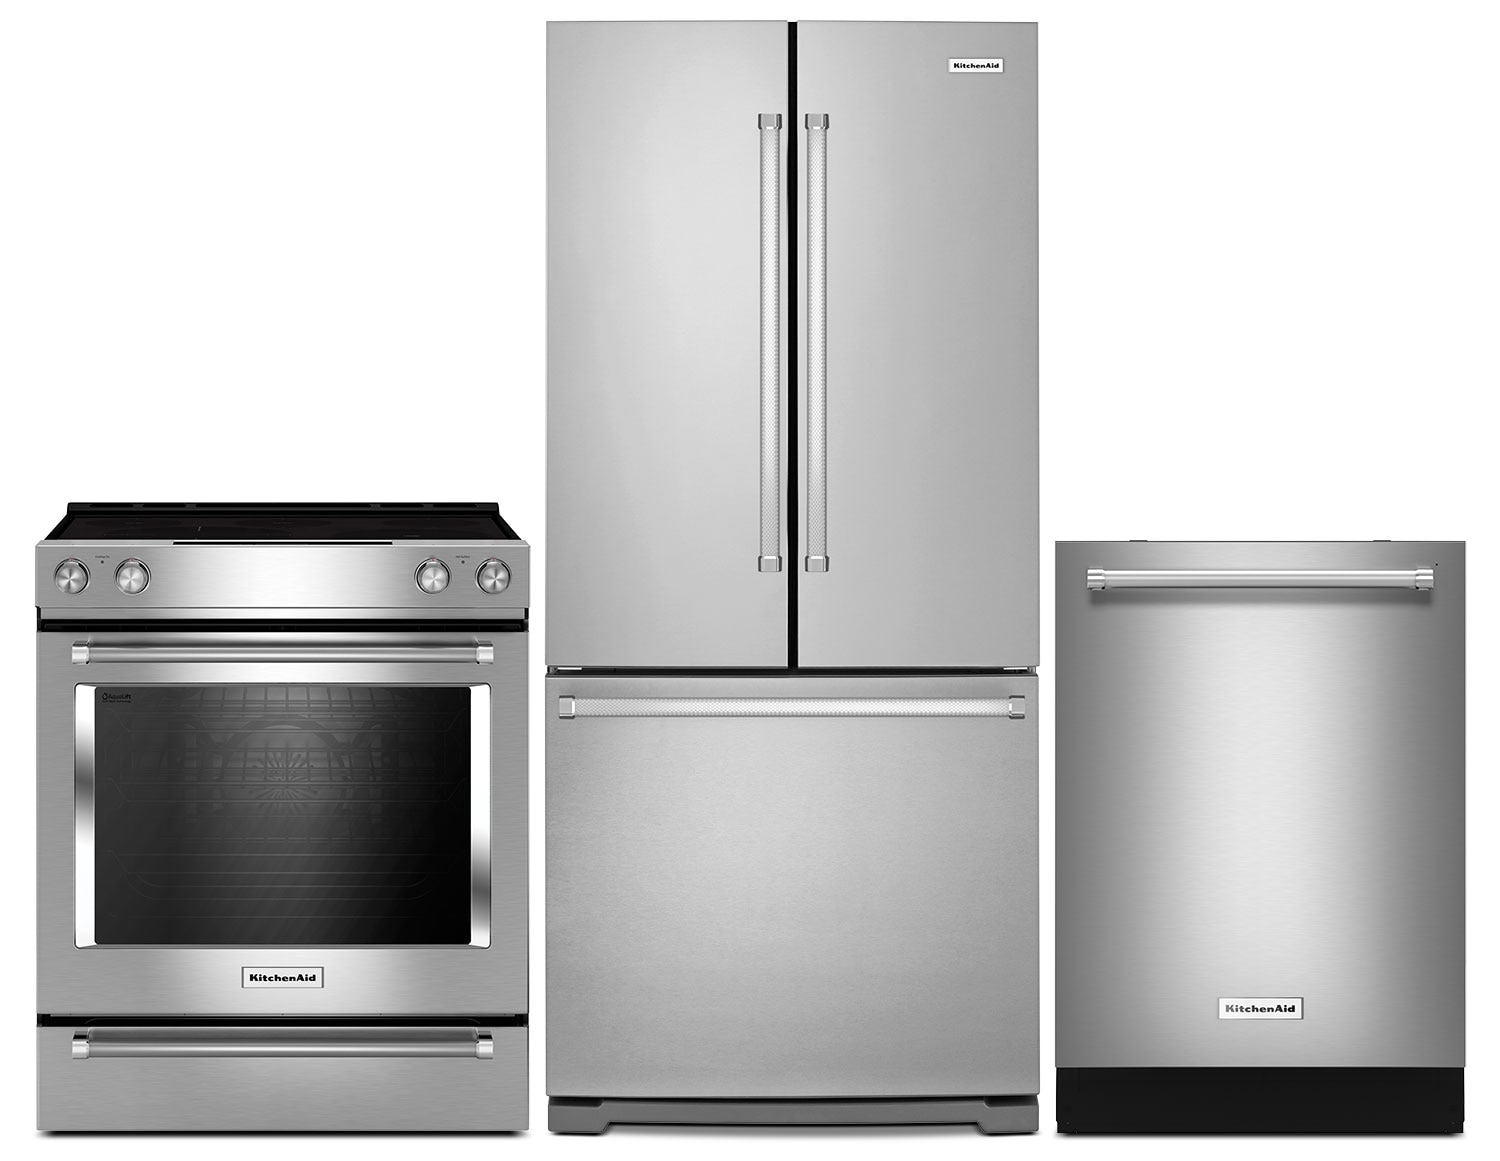 "KitchenAid 22.1 Cu. Ft. Refrigerator, Slide-In Electric Range and 24"" Dishwasher - Stainless Steel"